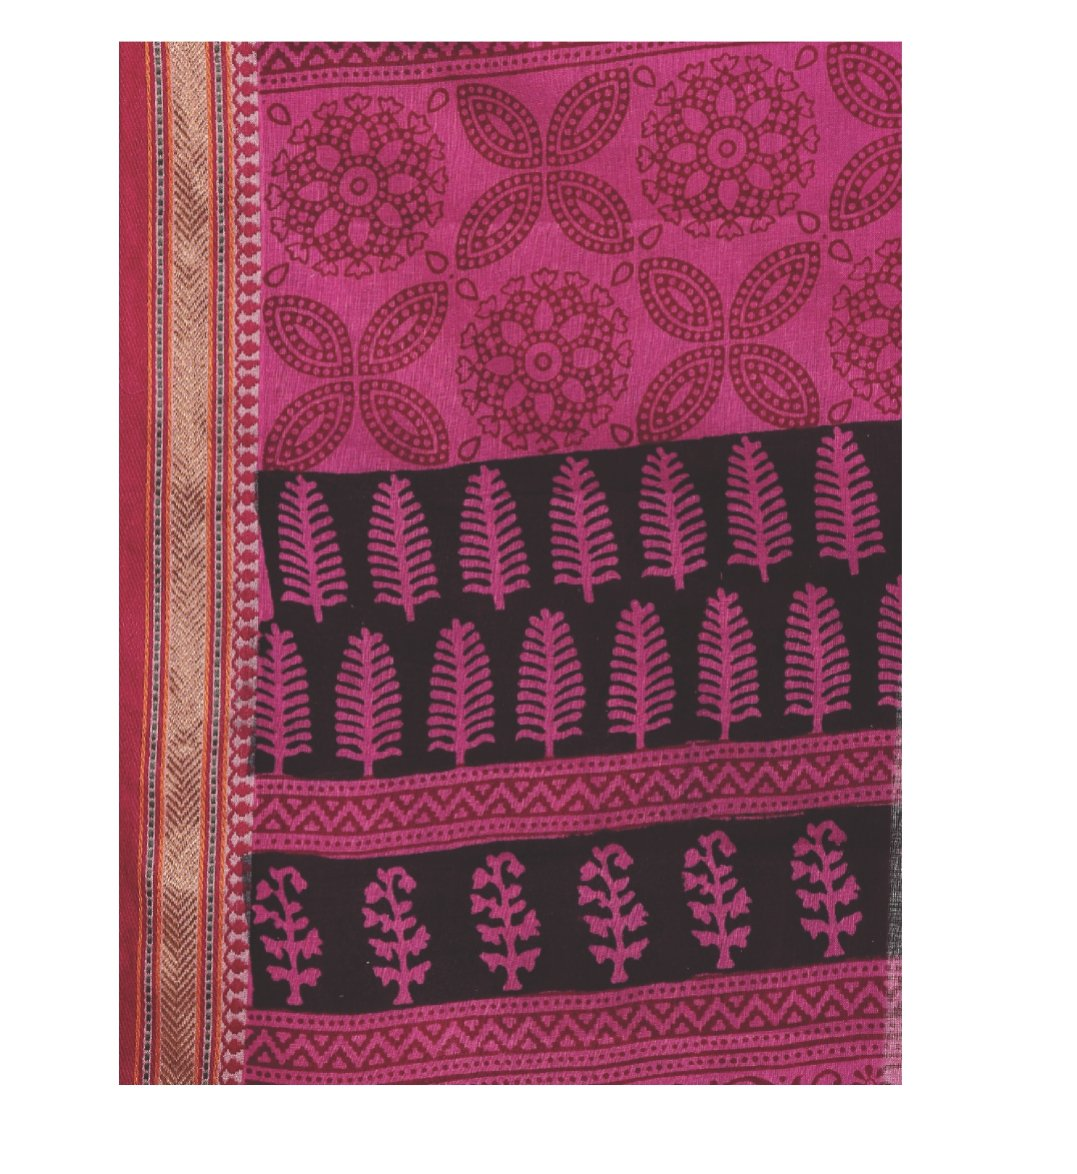 Pink Cotton Hand Block Bagh Print Handcrafted Saree-Saree-Kalakari India-ZIBASA0082-Bagh, Cotton, Geographical Indication, Hand Blocks, Hand Crafted, Heritage Prints, Natural Dyes, Sarees, Sustainable Fabrics-[Linen,Ethnic,wear,Fashionista,Handloom,Handicraft,Indigo,blockprint,block,print,Cotton,Chanderi,Blue, latest,classy,party,bollywood,trendy,summer,style,traditional,formal,elegant,unique,style,hand,block,print, dabu,booti,gift,present,glamorous,affordable,collectible,Sari,Saree,printed, hol